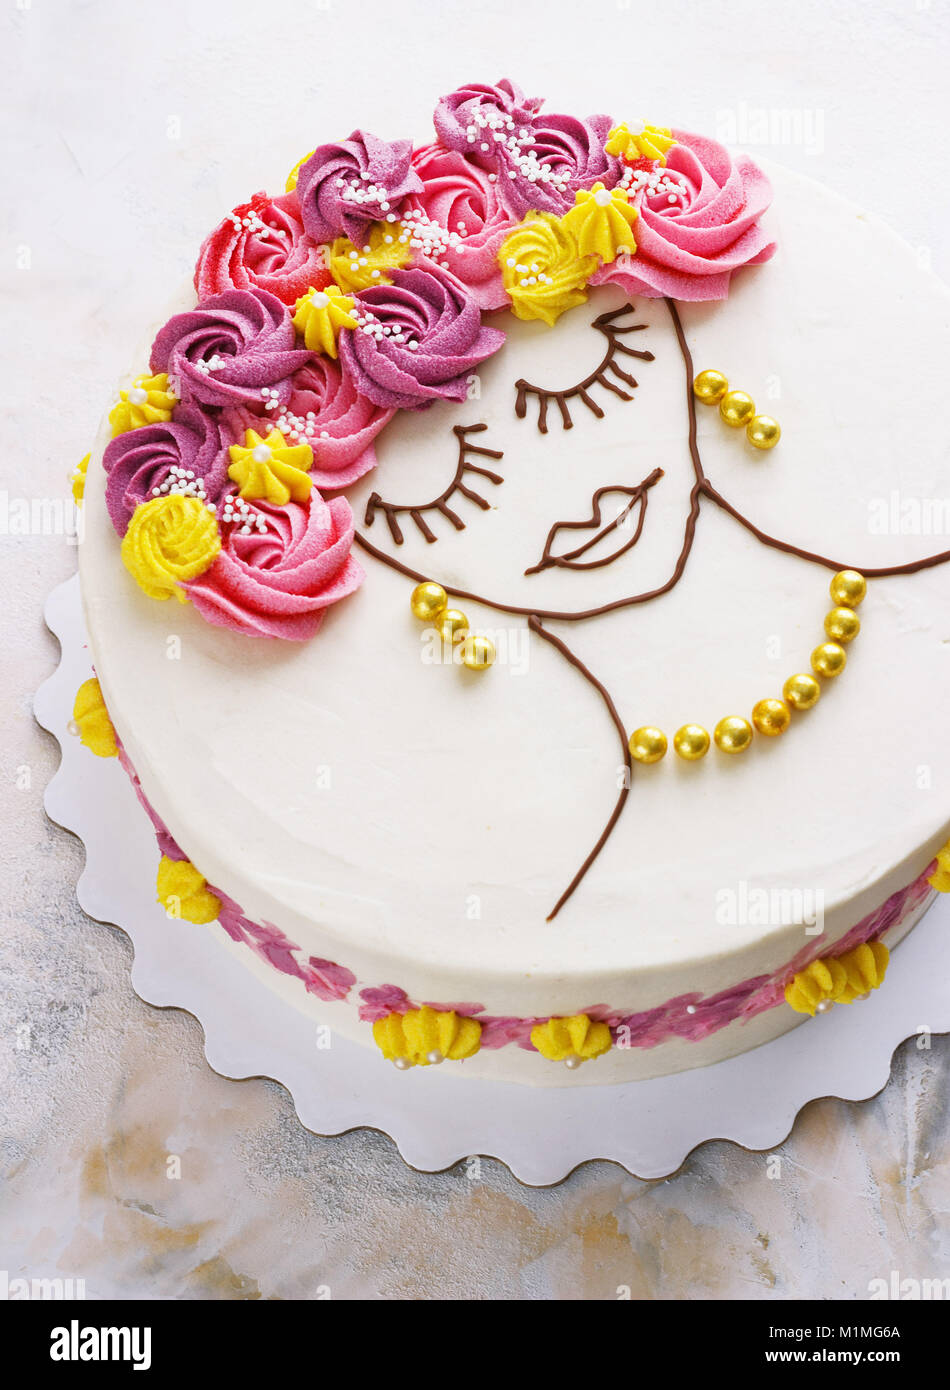 Festive cake with cream flowers and a girl face on a light background - Stock Image